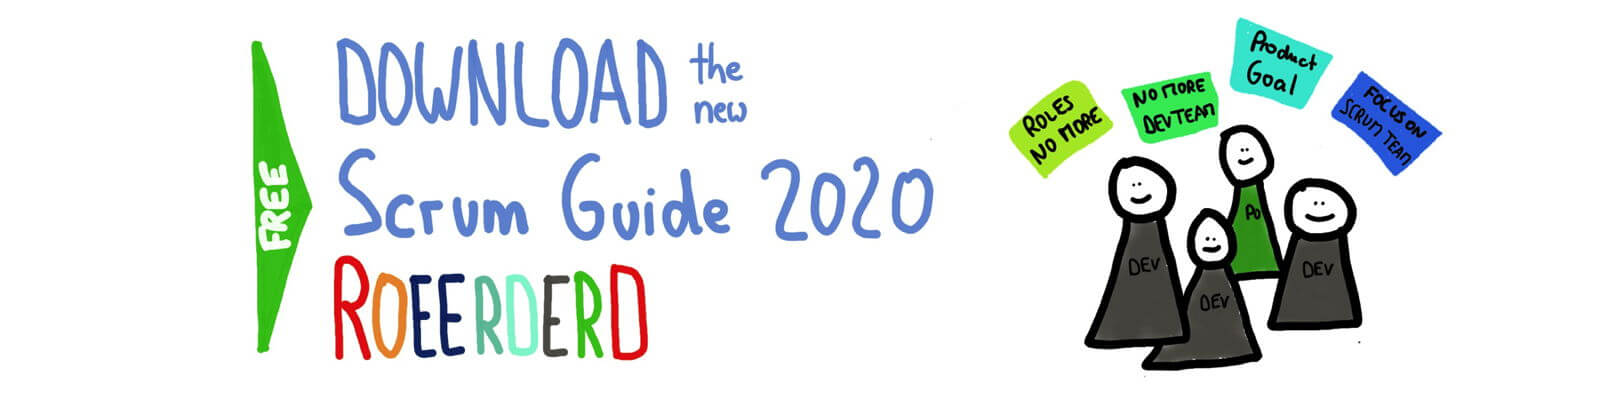 Download the Scrum Guide 2020 Reordered for Free